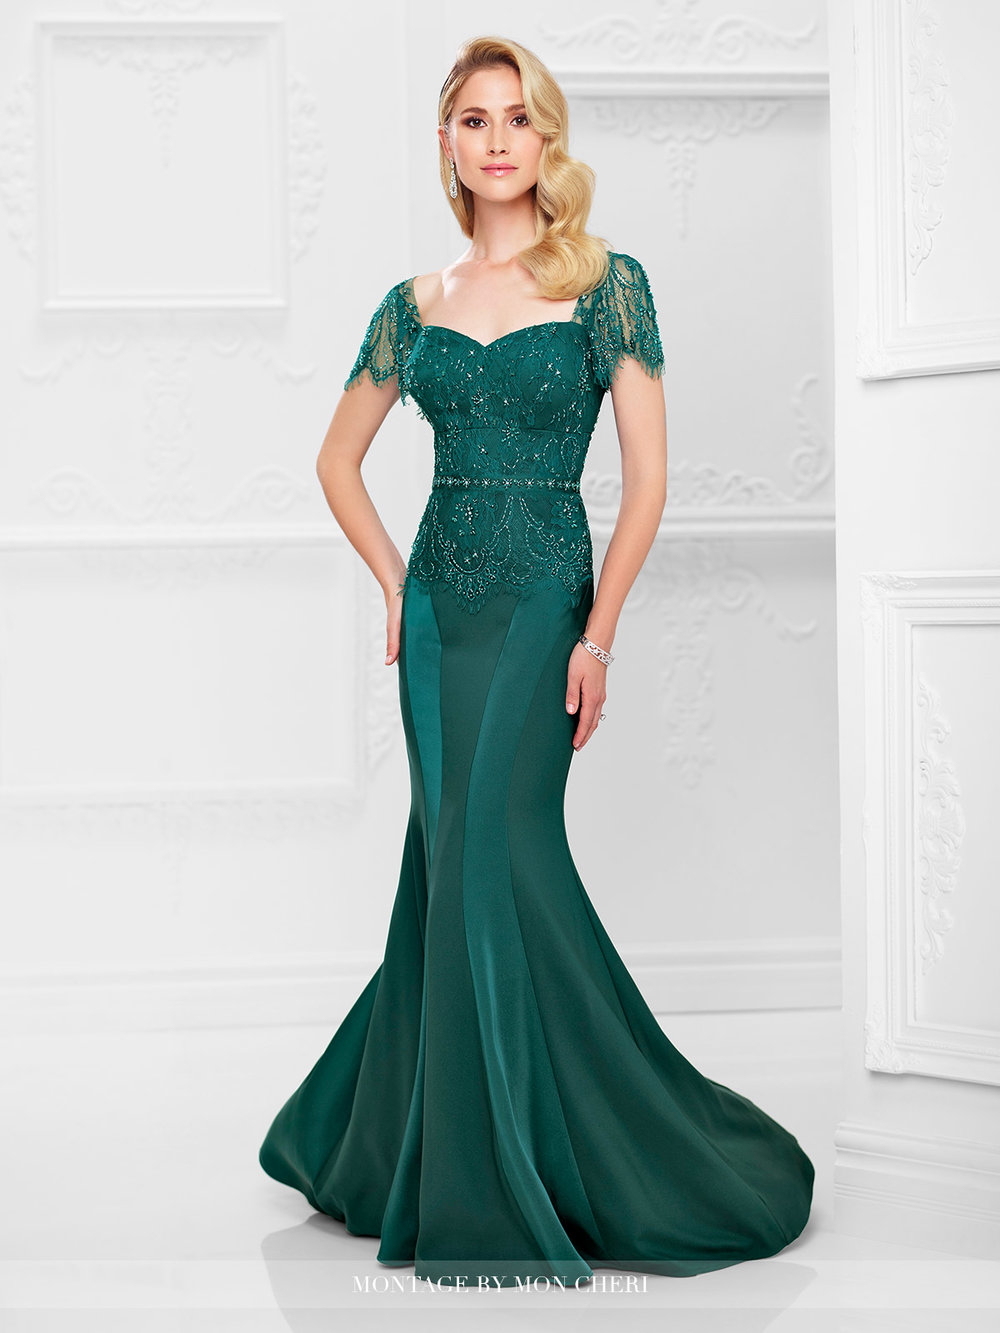 117908_green-mother-of-the-bride-2017.jpg